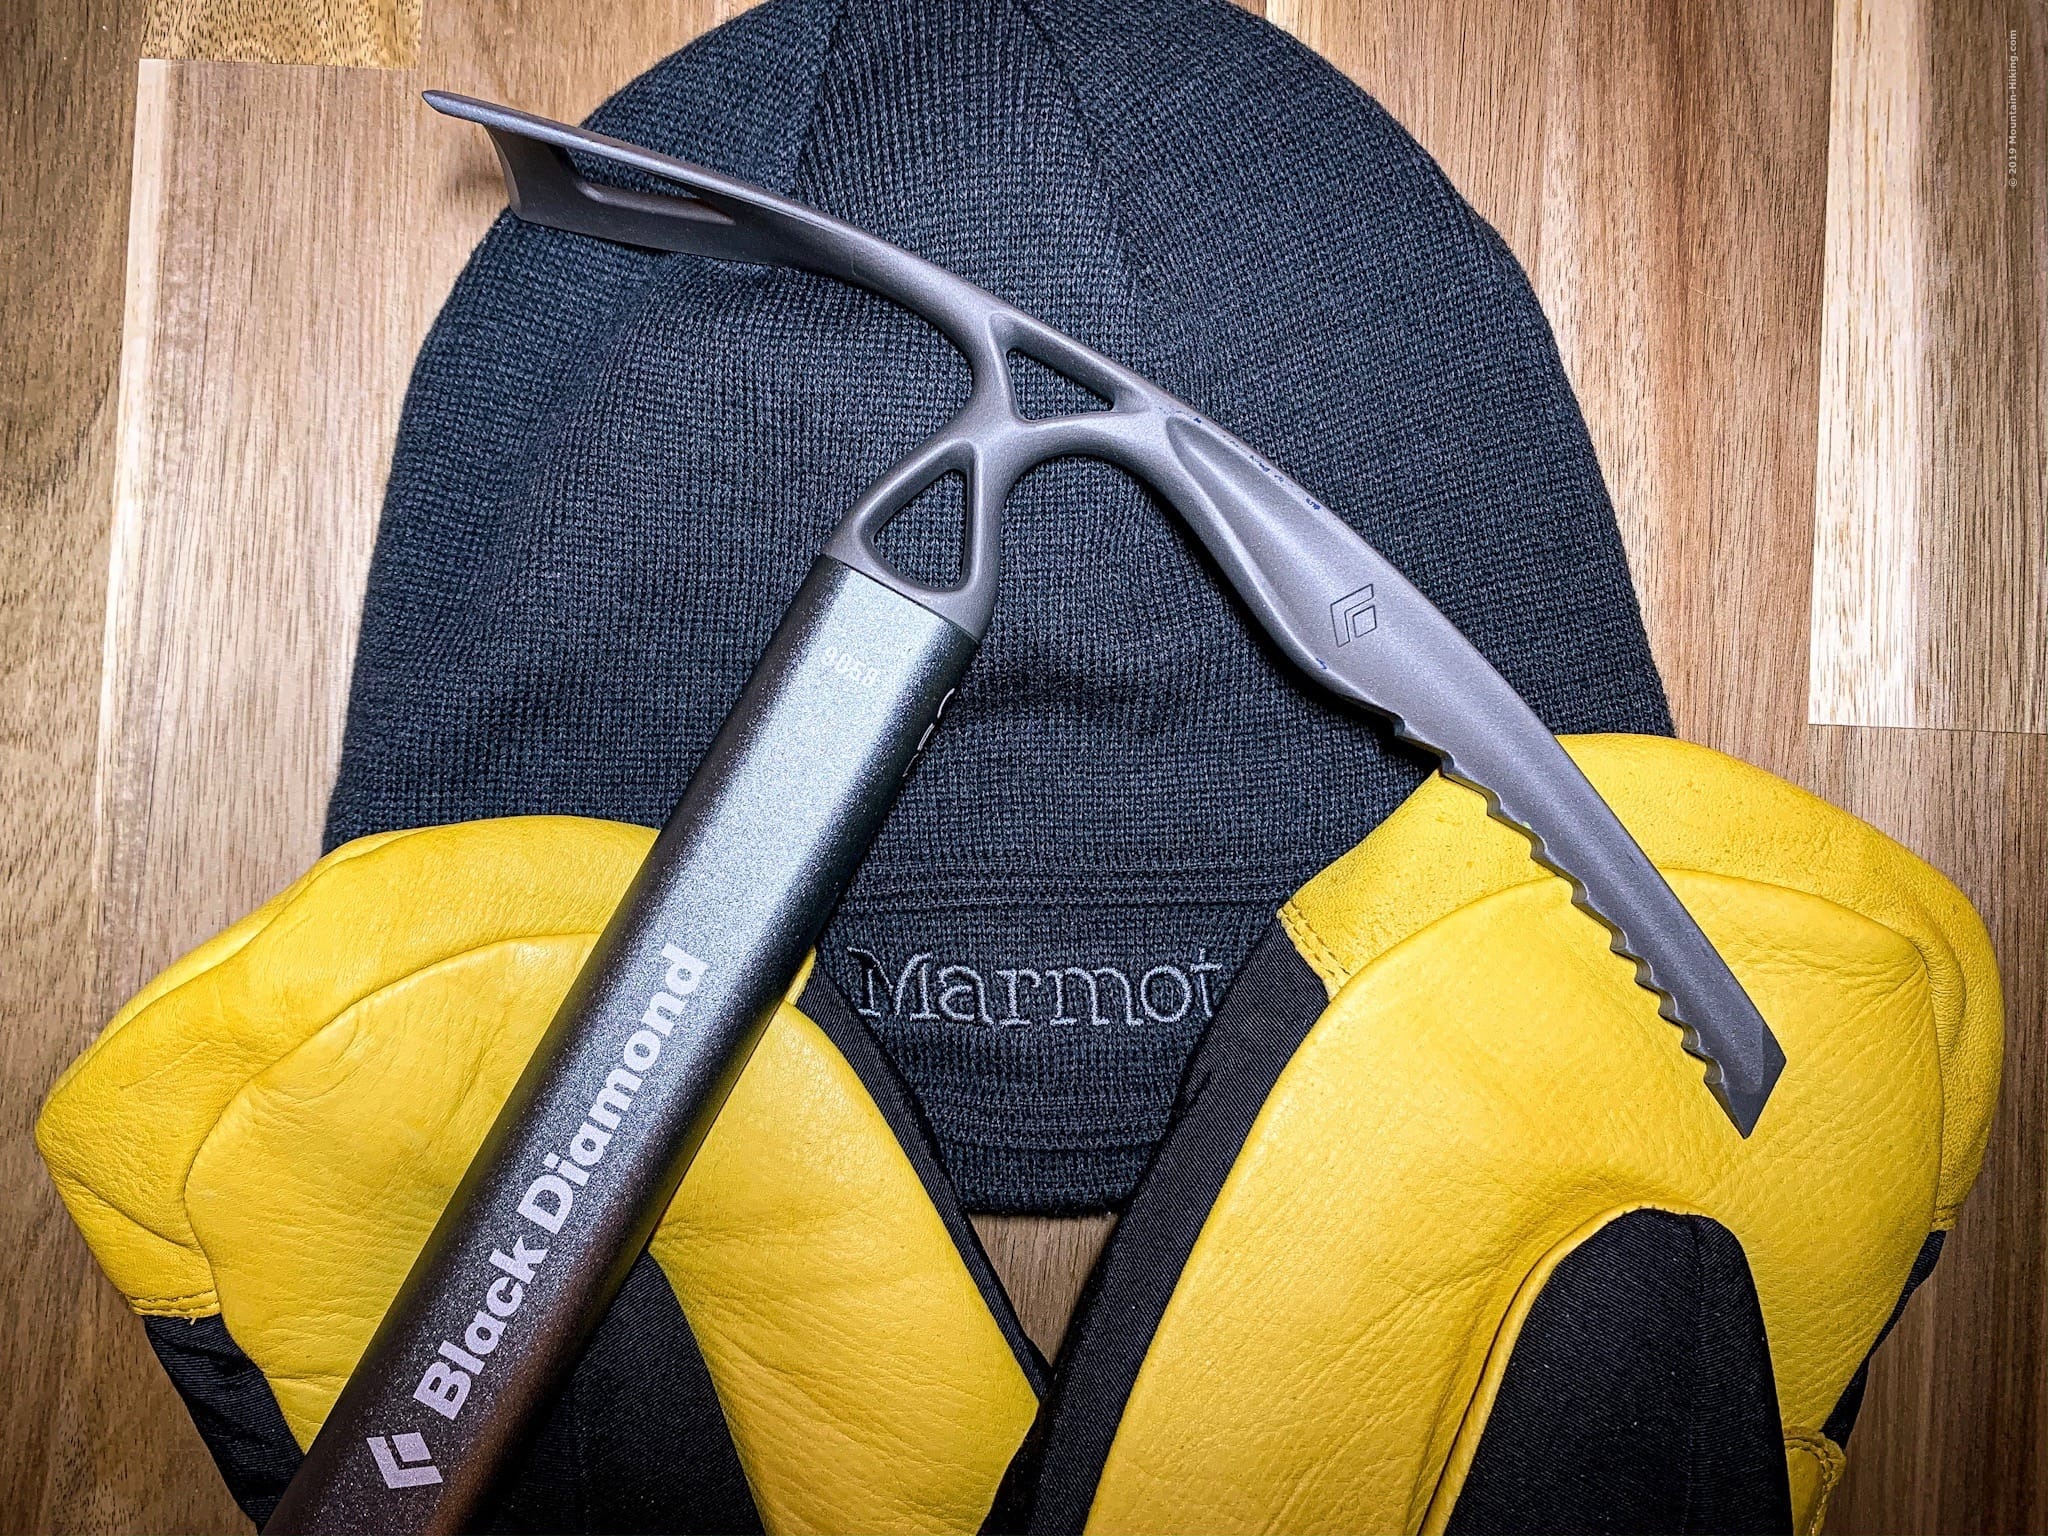 Winter Hiking Gear: hat, gloves, ice axe